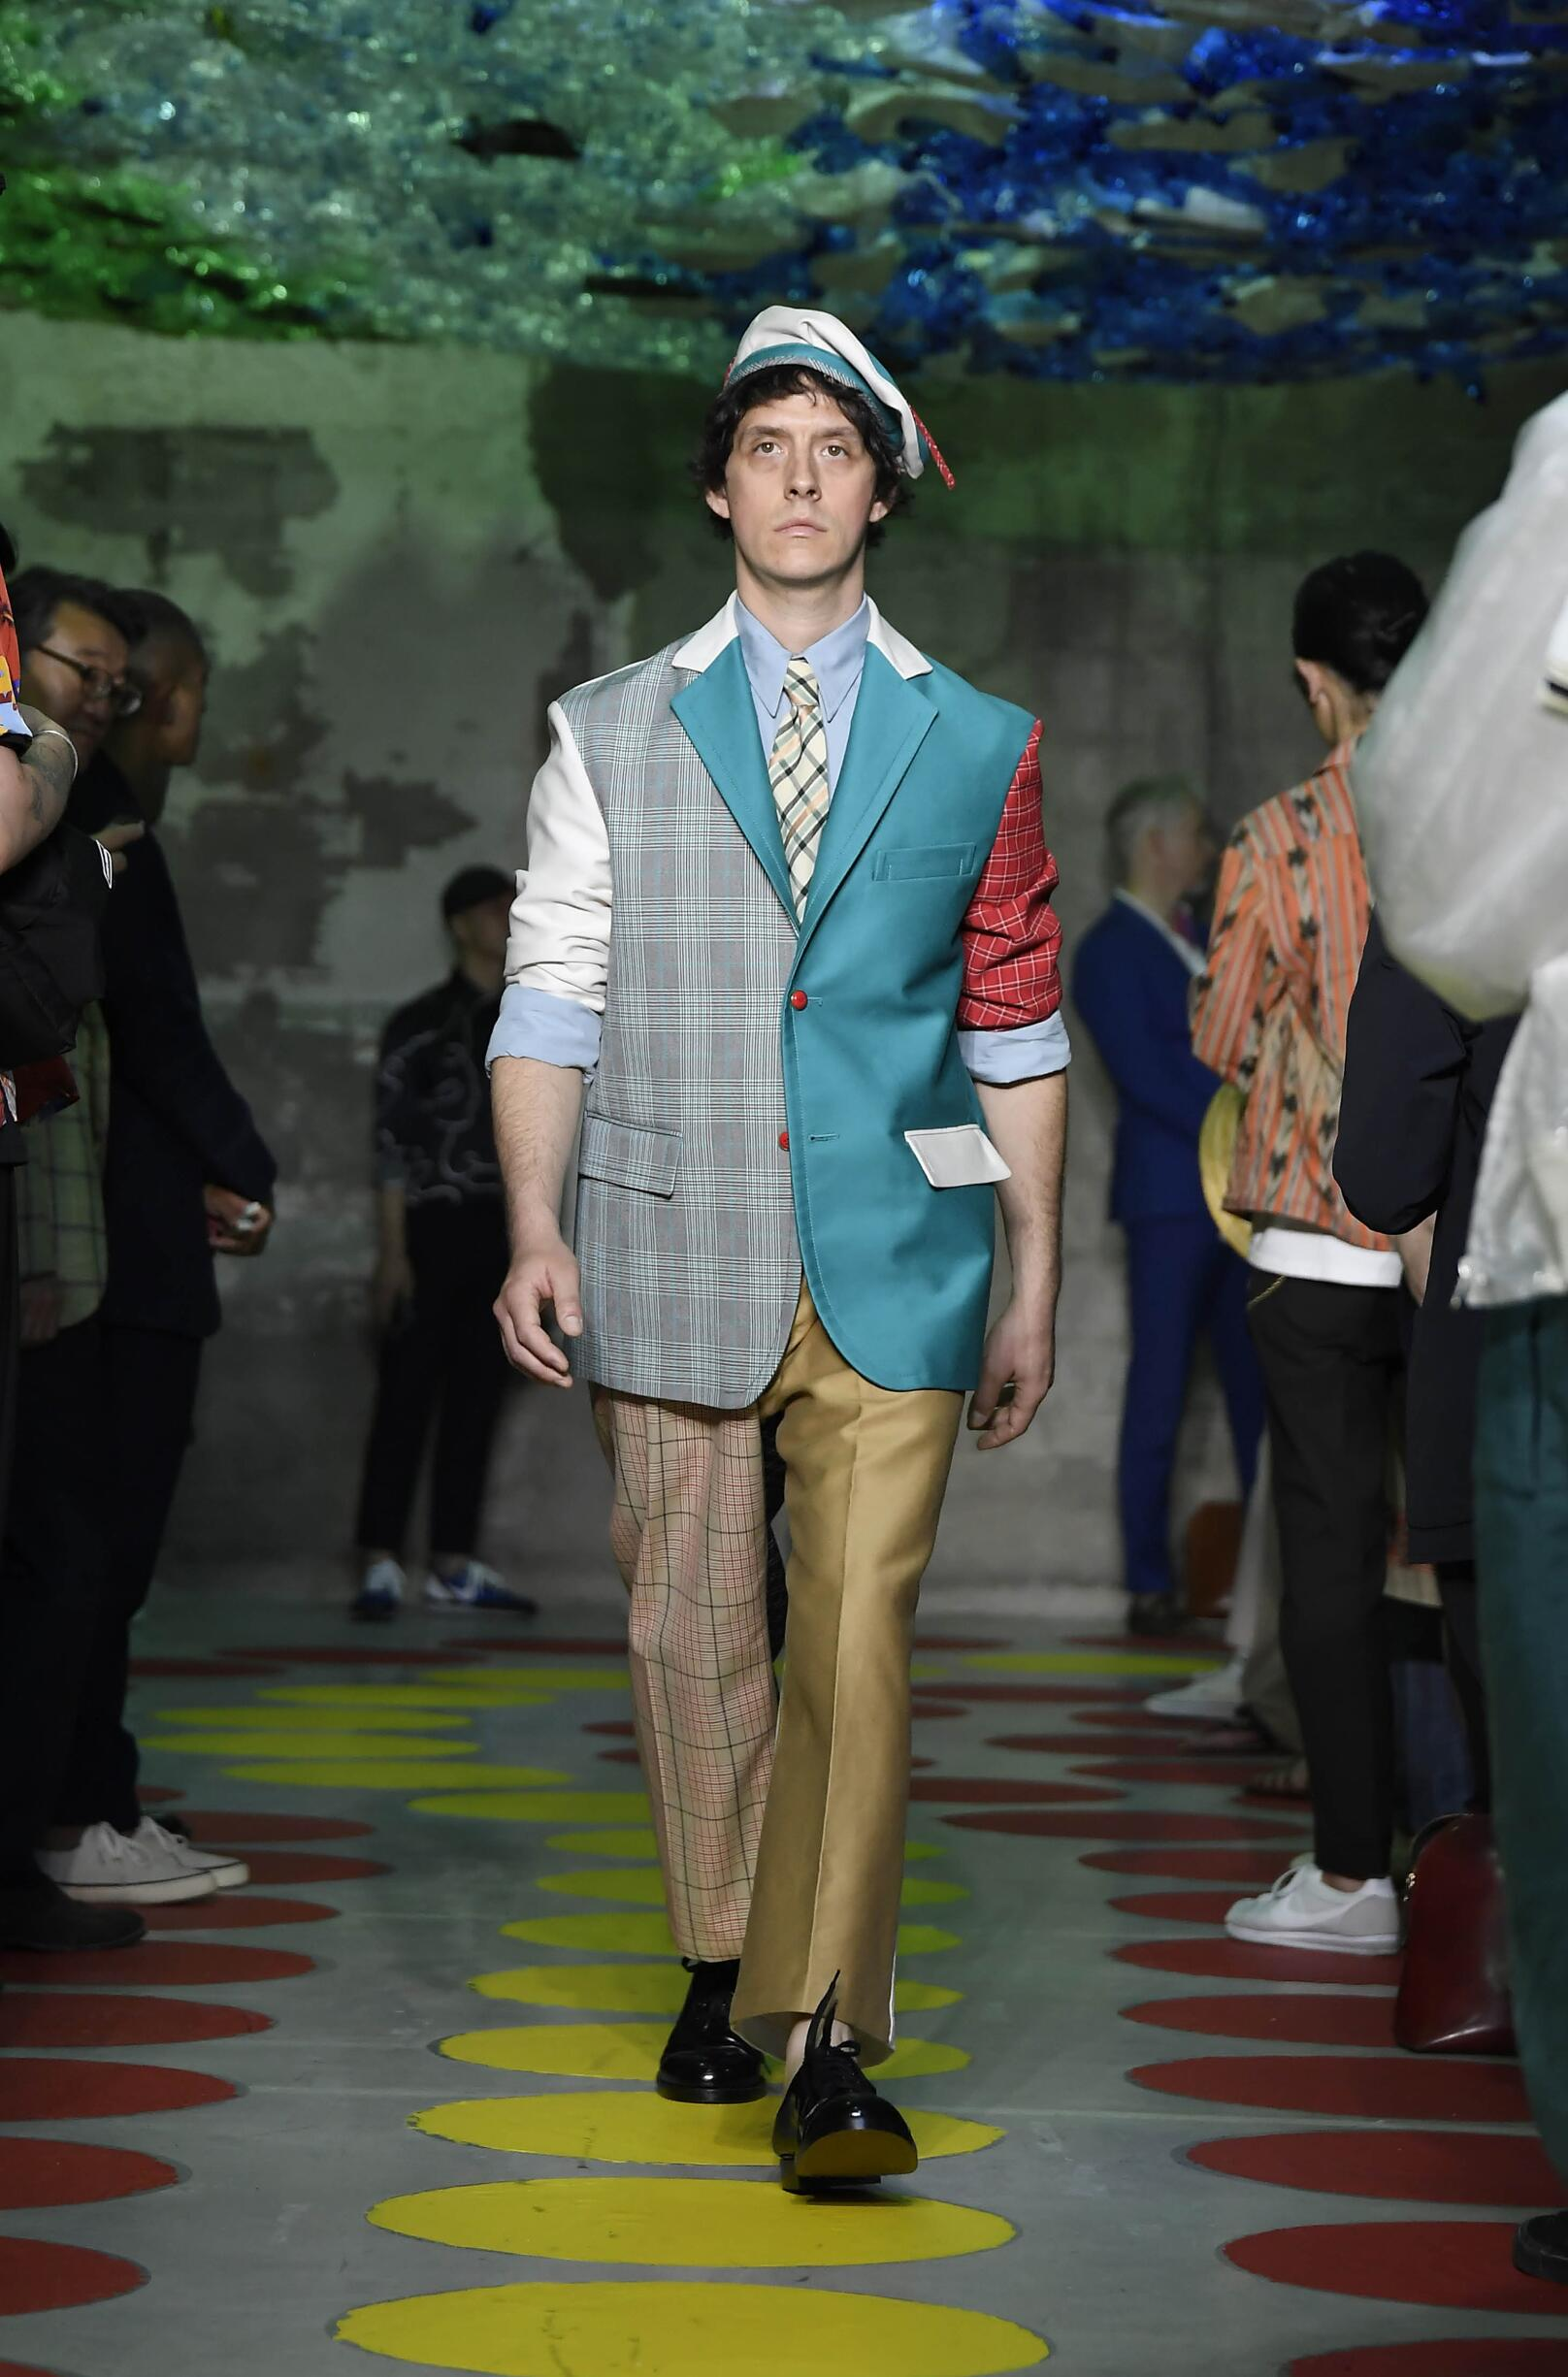 Man SS 2020 Marni Show Milan Fashion Week